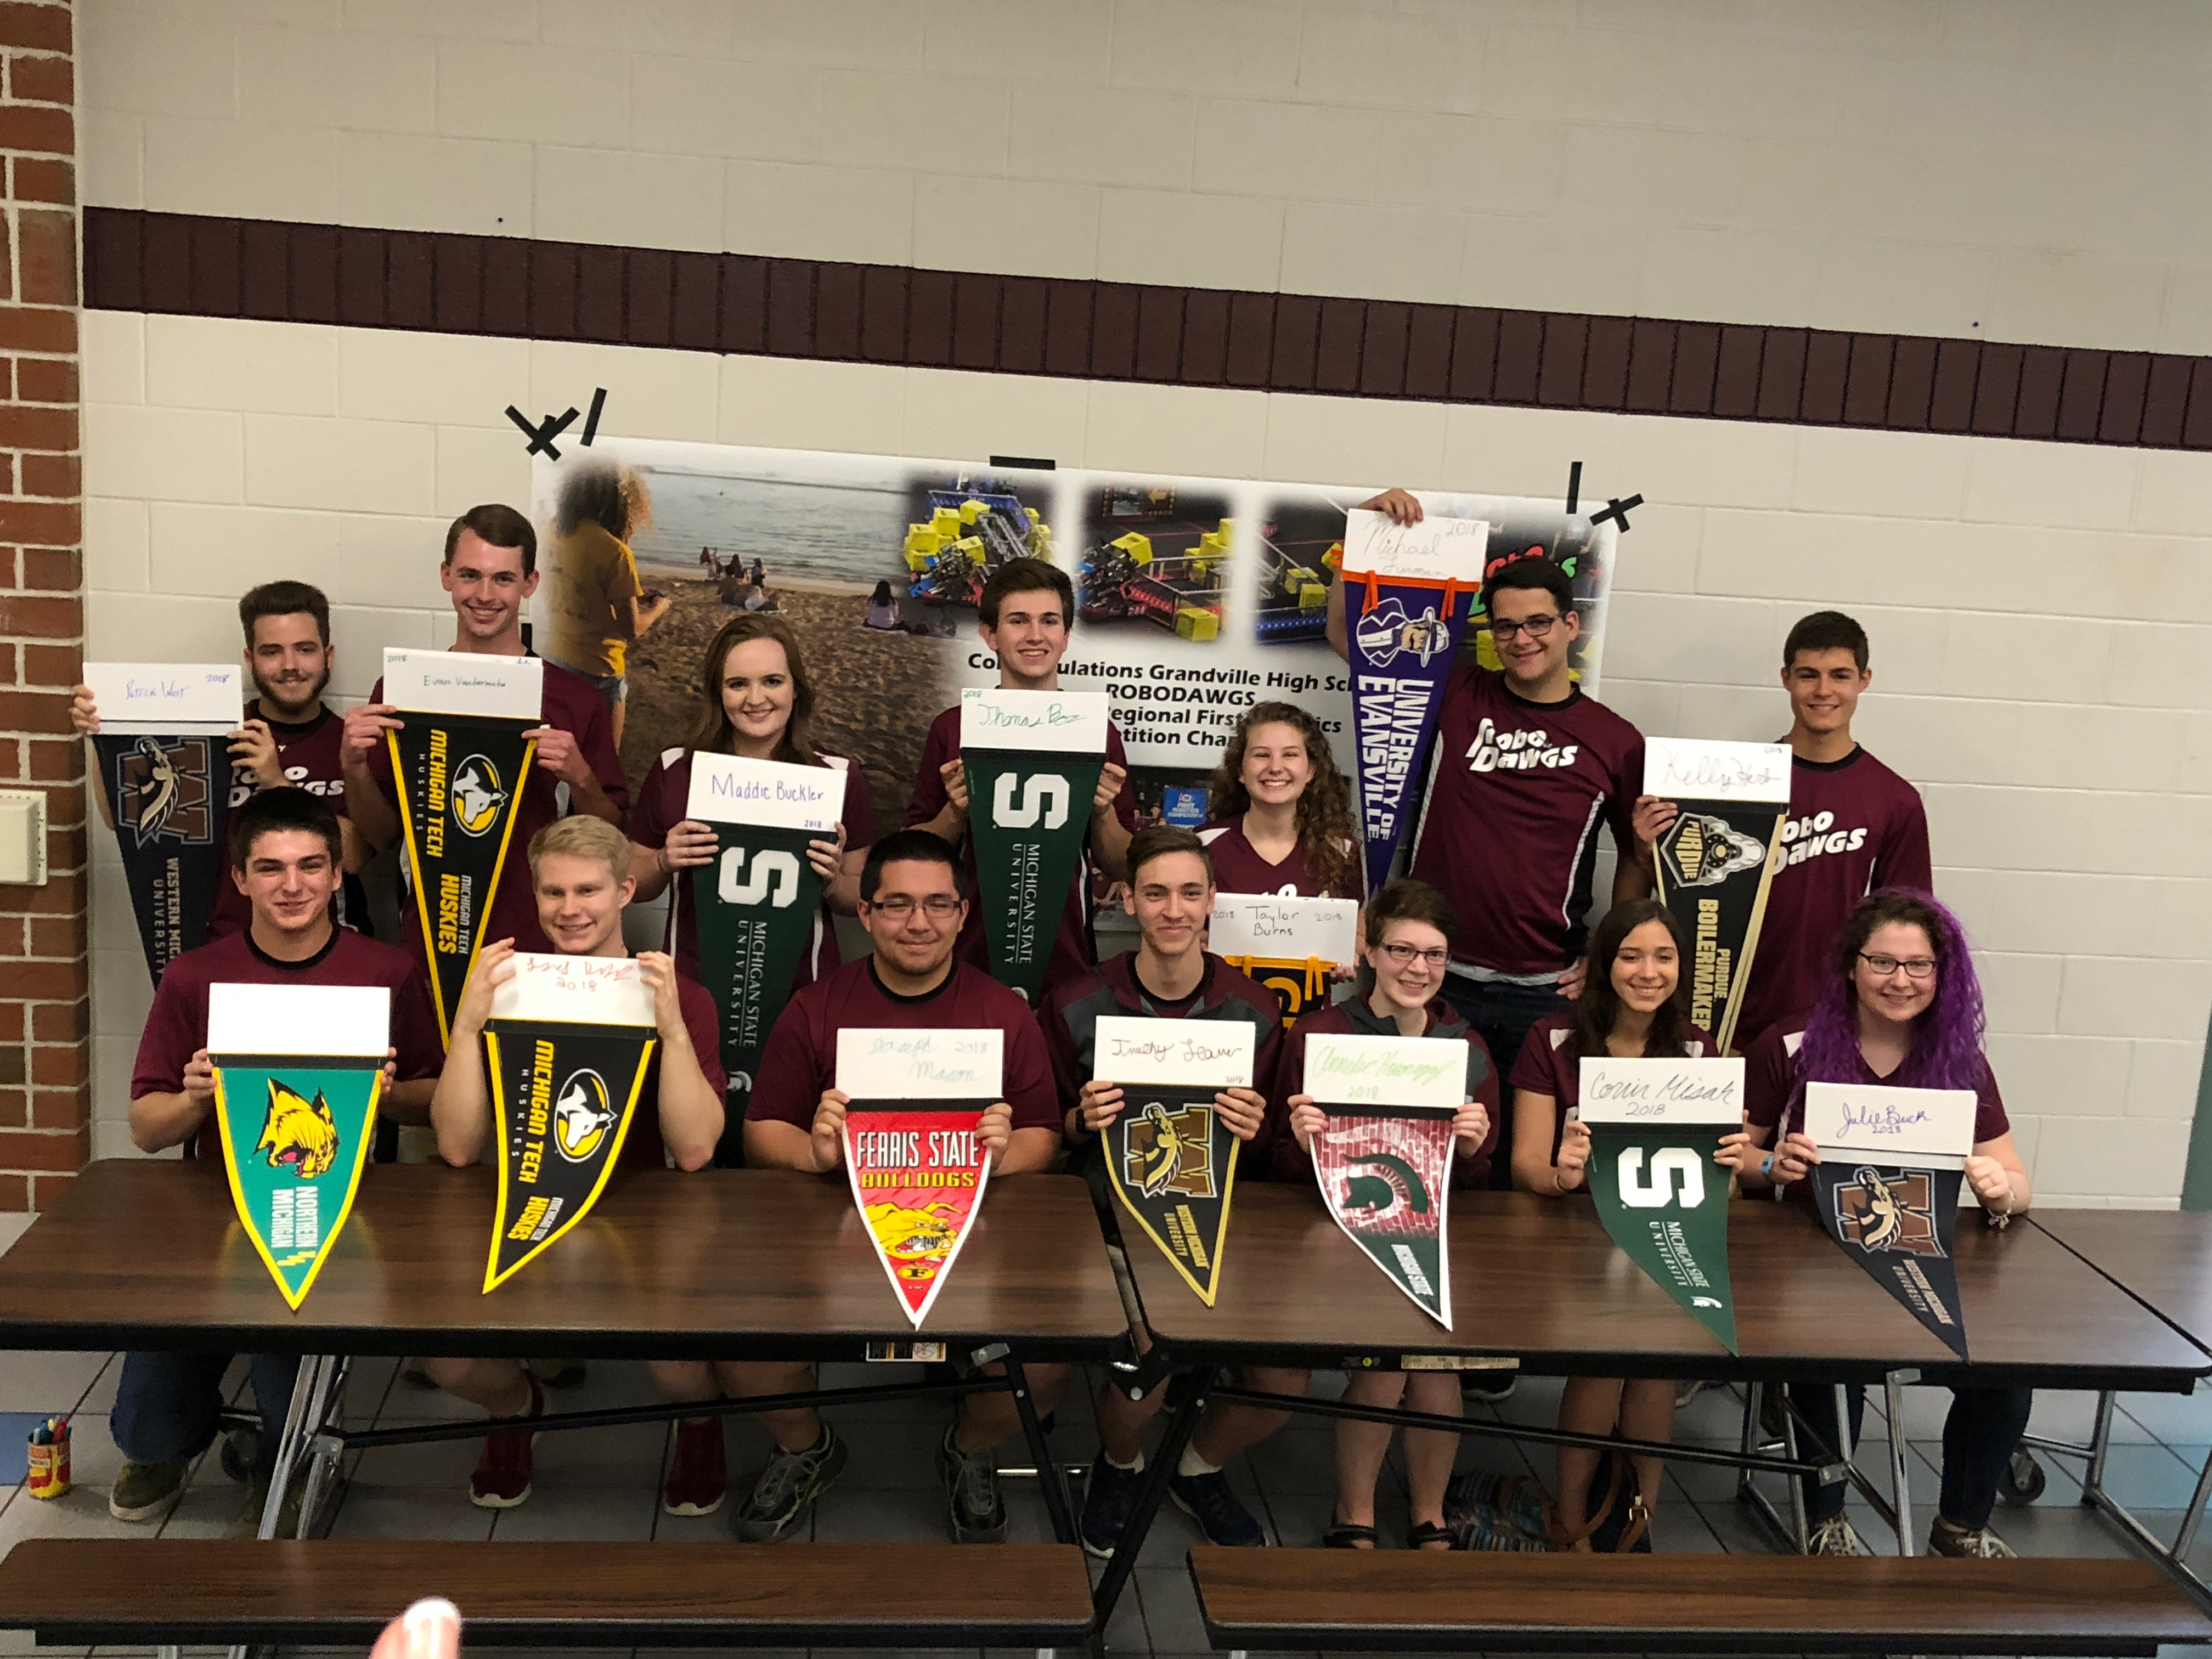 2018 GHS RoboDawg Pennant signing